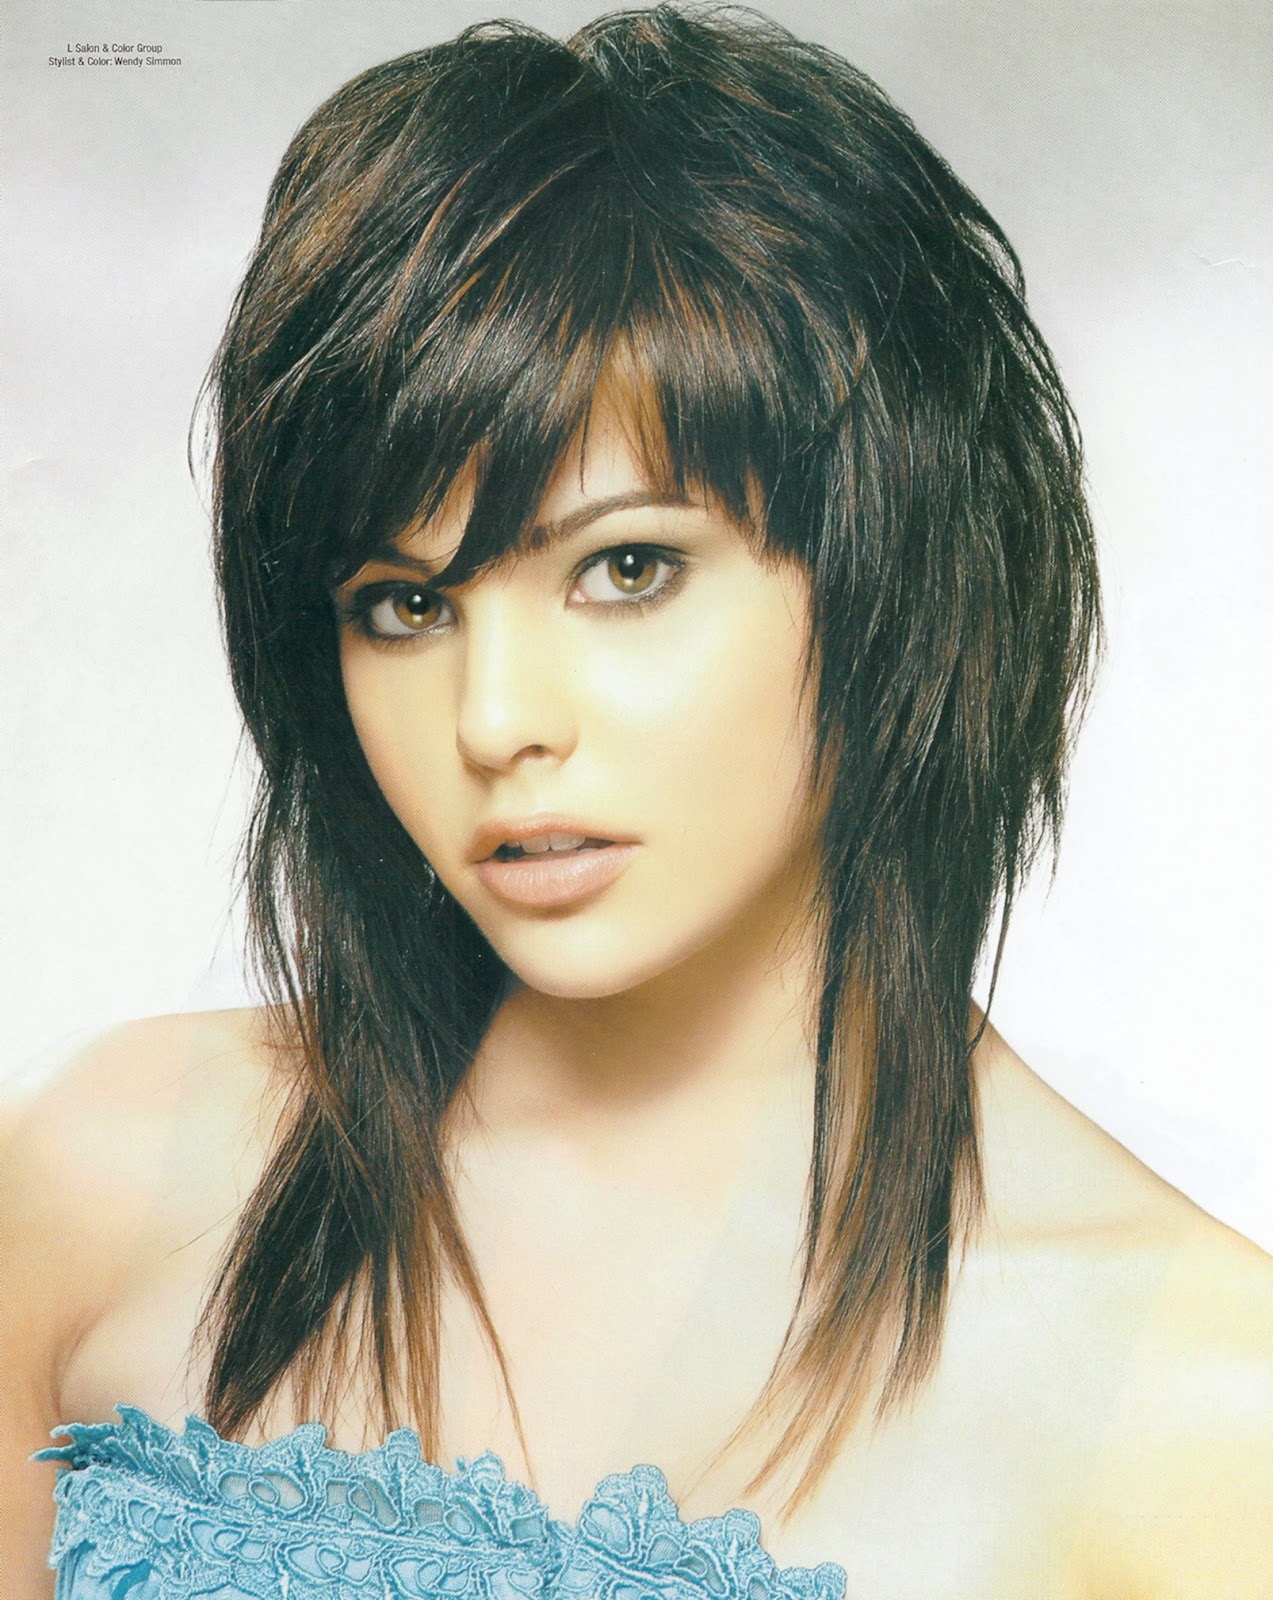 Hairstyle Haircut : Shag Hairstyles For Women - Hairstyles For Women